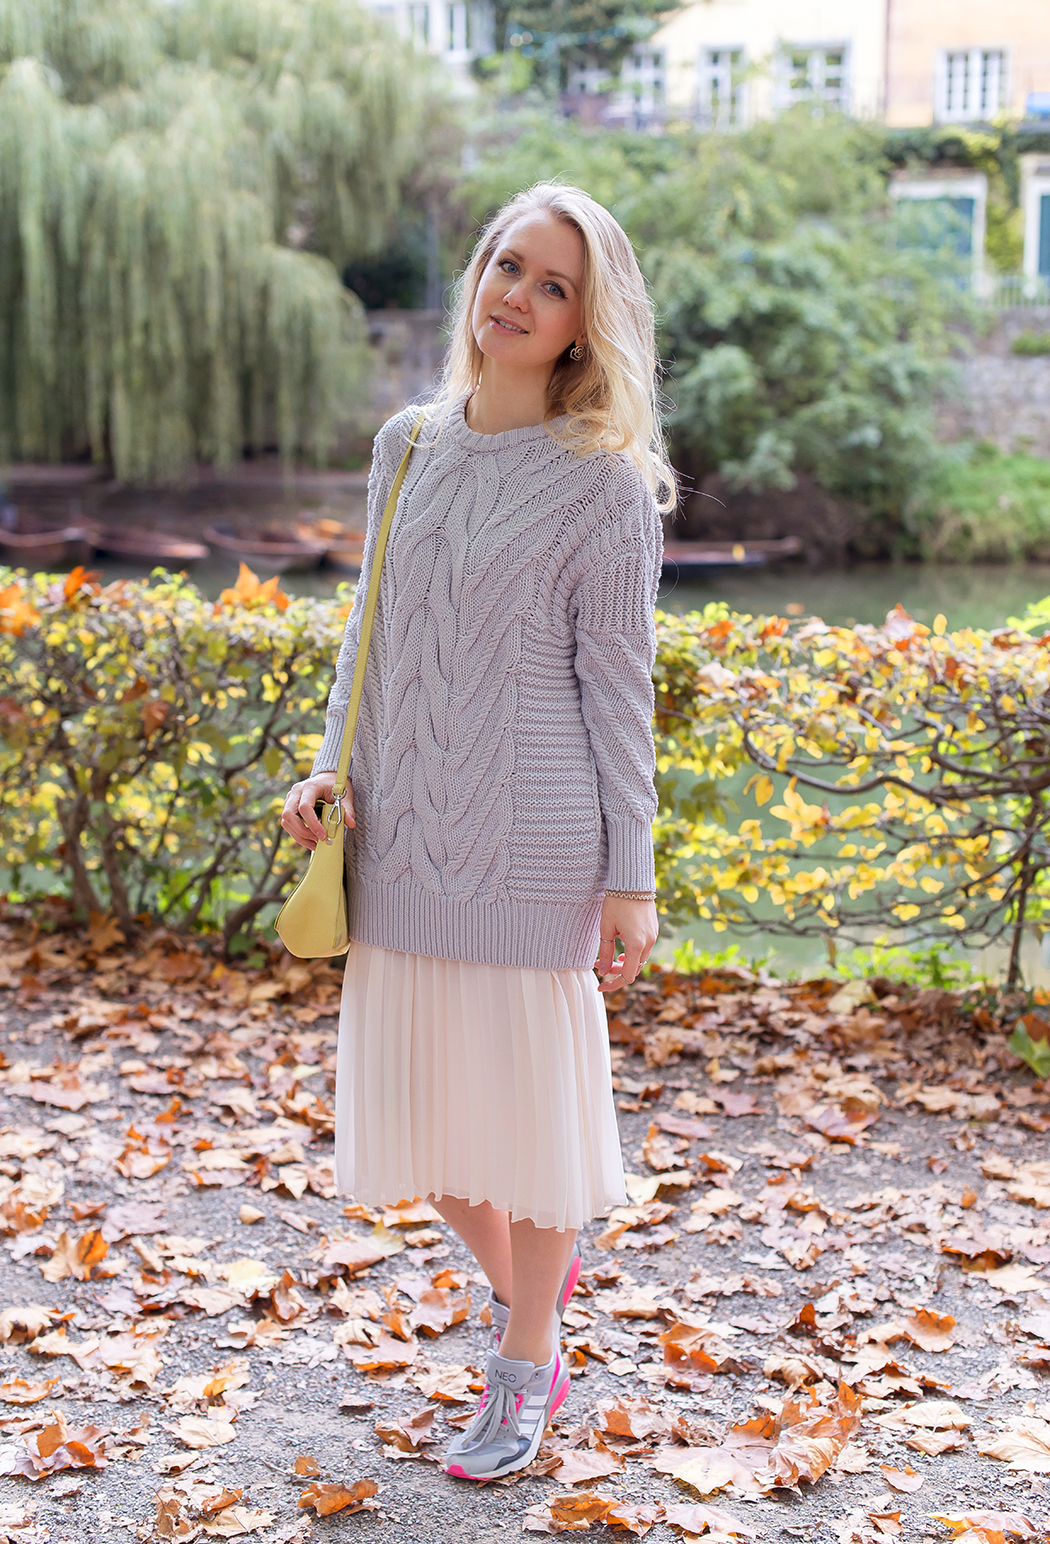 inspiration, streetstyle, summer outfit, summer streetstyle, autumn outfit, knitted sweater, oversize sweater, annamidday, top fashion blogger, top russian fashion blogger, stefanel, фэшн блогер, русский блогер, известный блогер, топовый блогер, russian bloger, top russian blogger, streetfashion, russian fashion blogger, blogger, fashion, style, fashionista, модный блогер, российский блогер, ТОП блогер, ootd, lookoftheday, look, популярный блогер, российский модный блогер, annamidday, top russian blogger, autumn look,  russian girl, marc cain, с чем носить кроссовки, творческая девушка, girly, forever21, how to wear sweater, вязаный свитер, с чем носить свитер, с чем носить юбку, юбка с кроссовками,  красивая девушка, русская девушка, fashion week